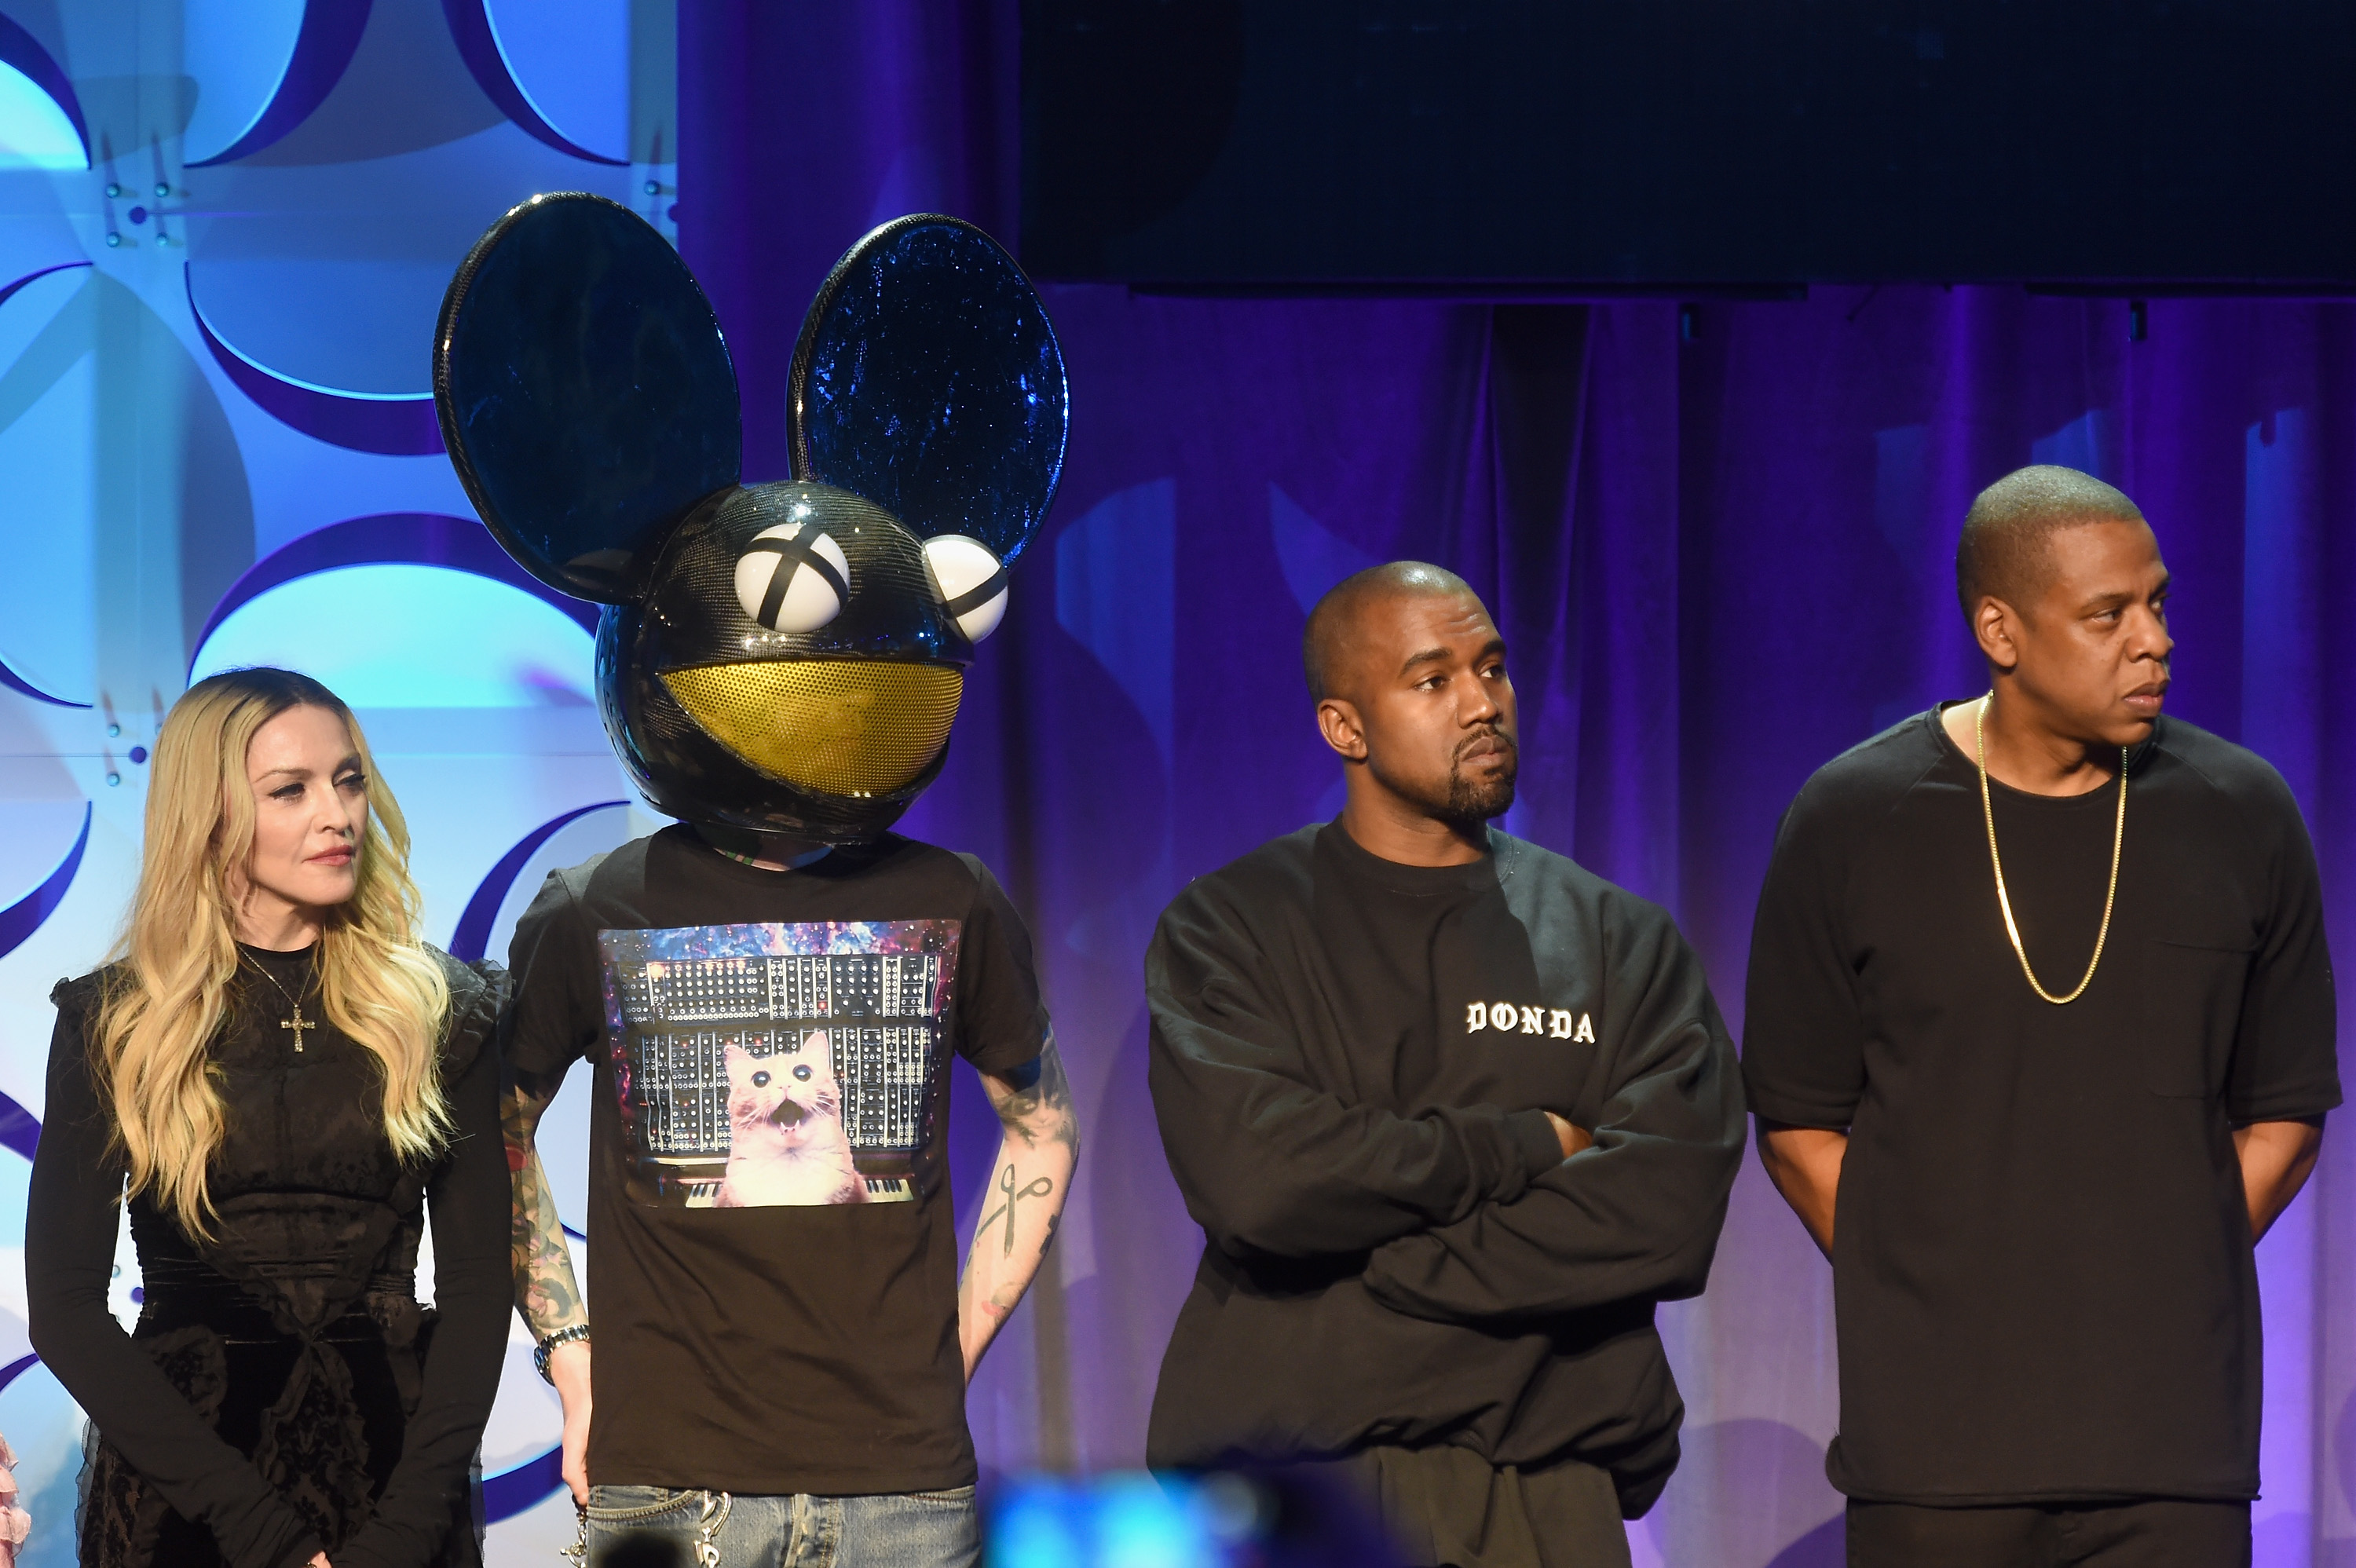 Madonna, Deadmau5, Kanye West, and JAY Z onstage at the Tidal launch event #TIDALforALL at Skylight at Moynihan Station on March 30, 2015 in New York City.